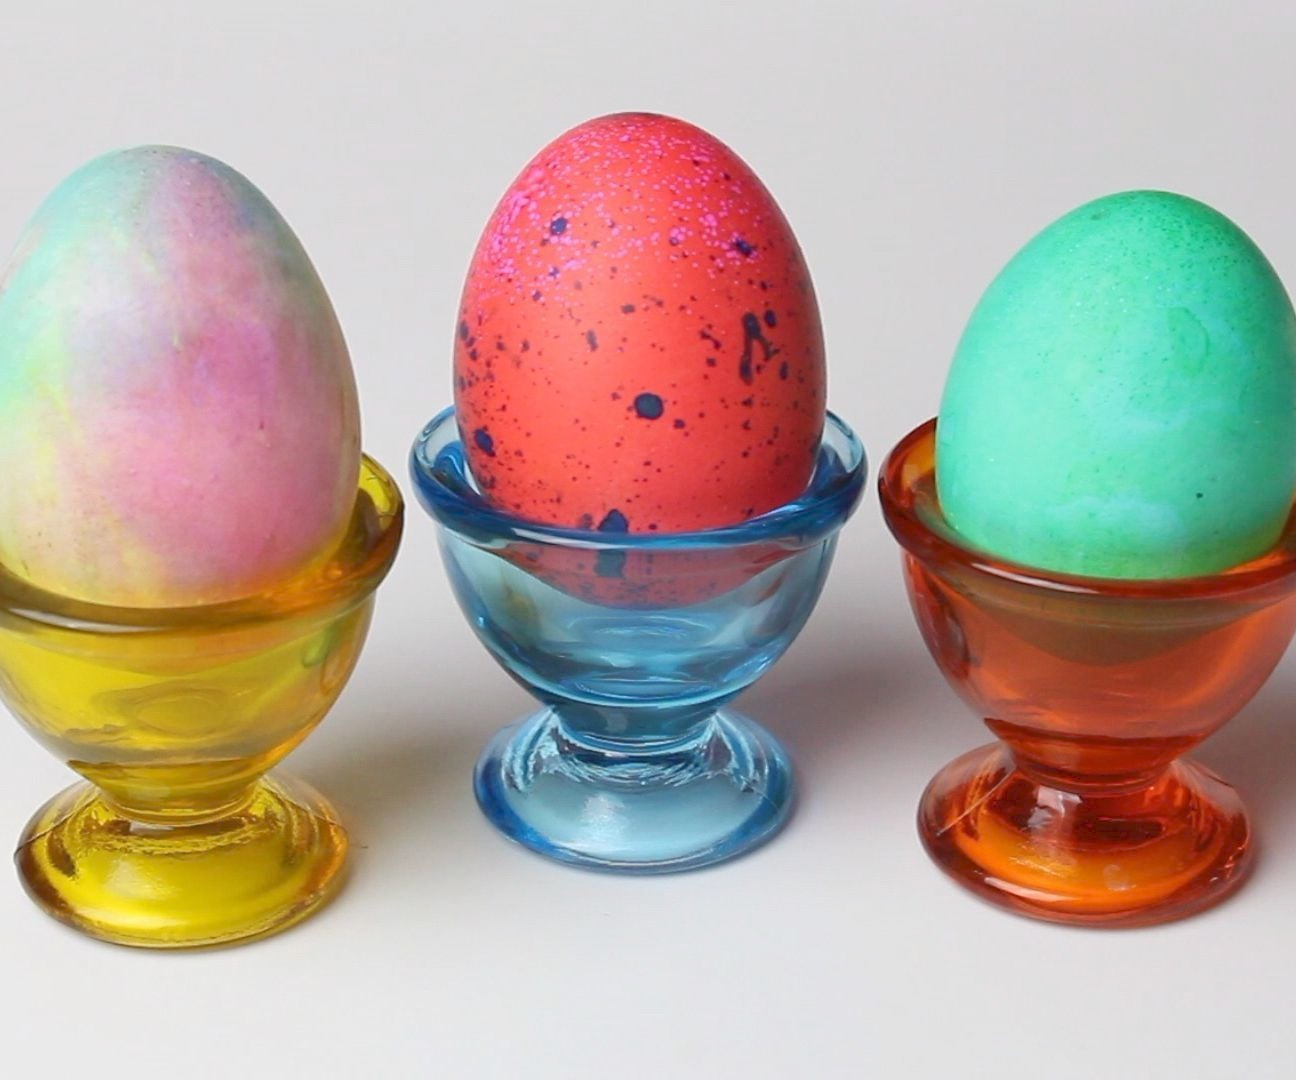 How To Make And Dye For Easter Easy To Peel Boiled Eggs 17 Steps